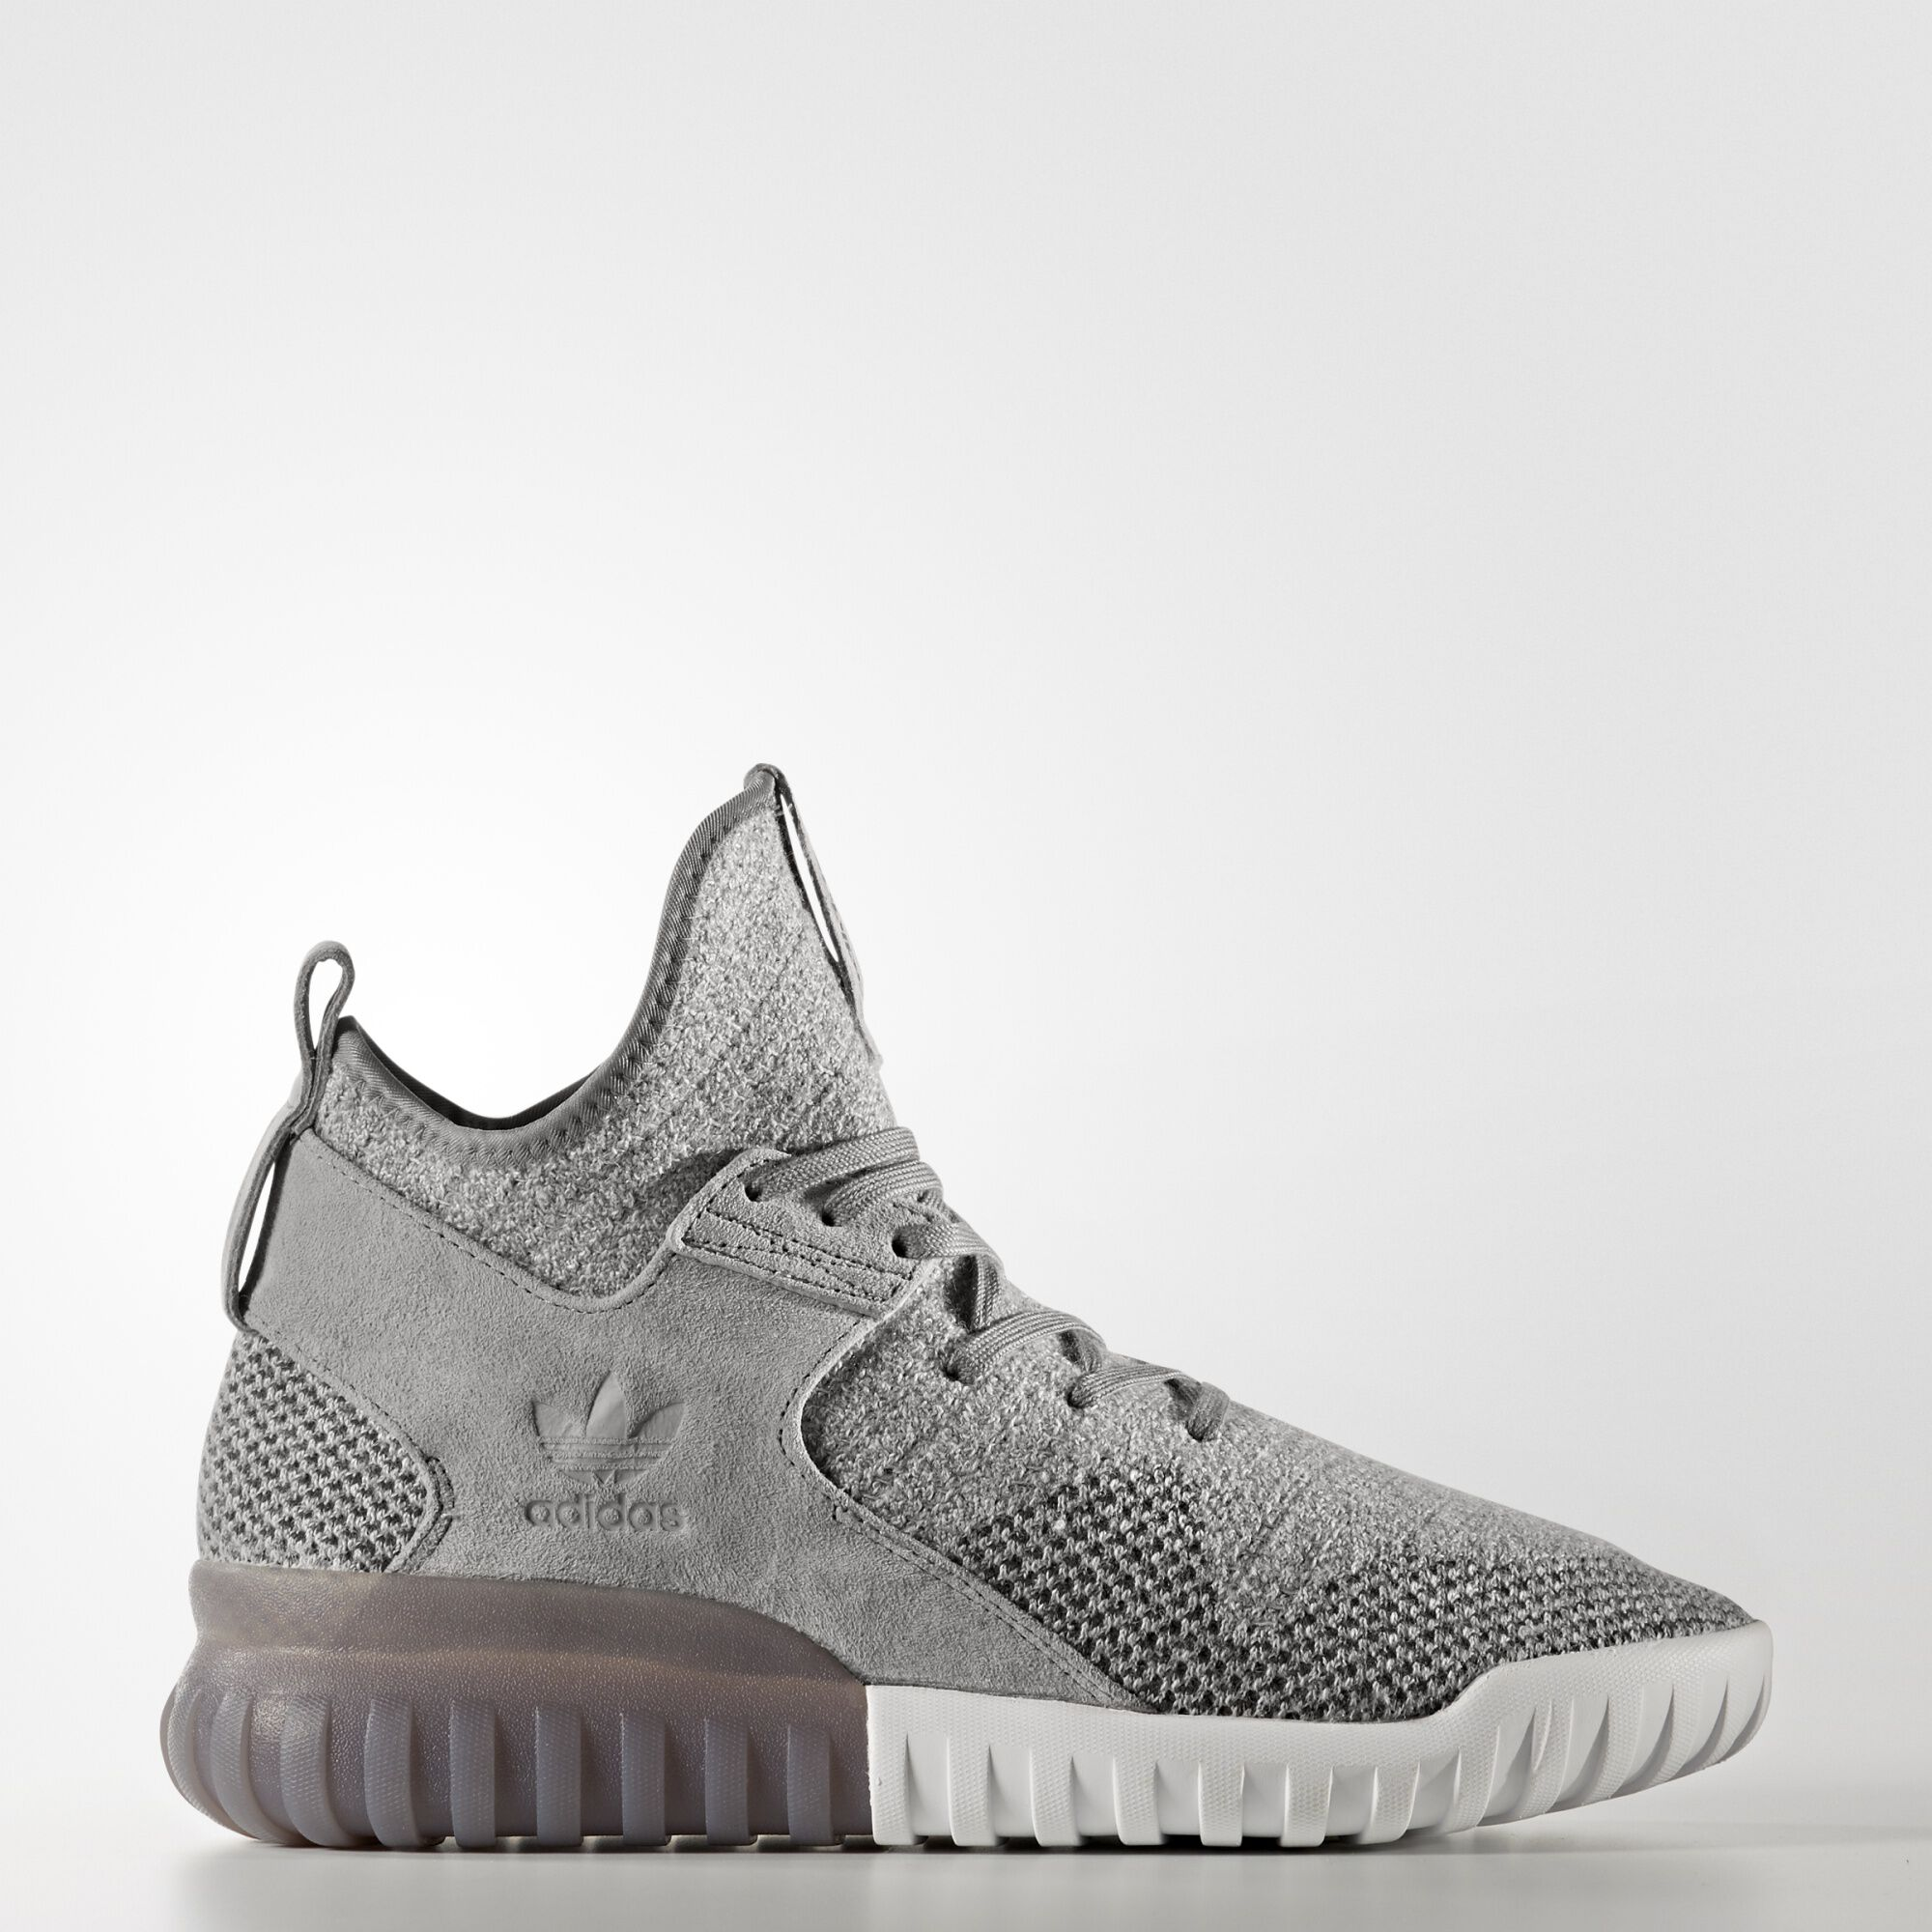 adidas shoes online outlet